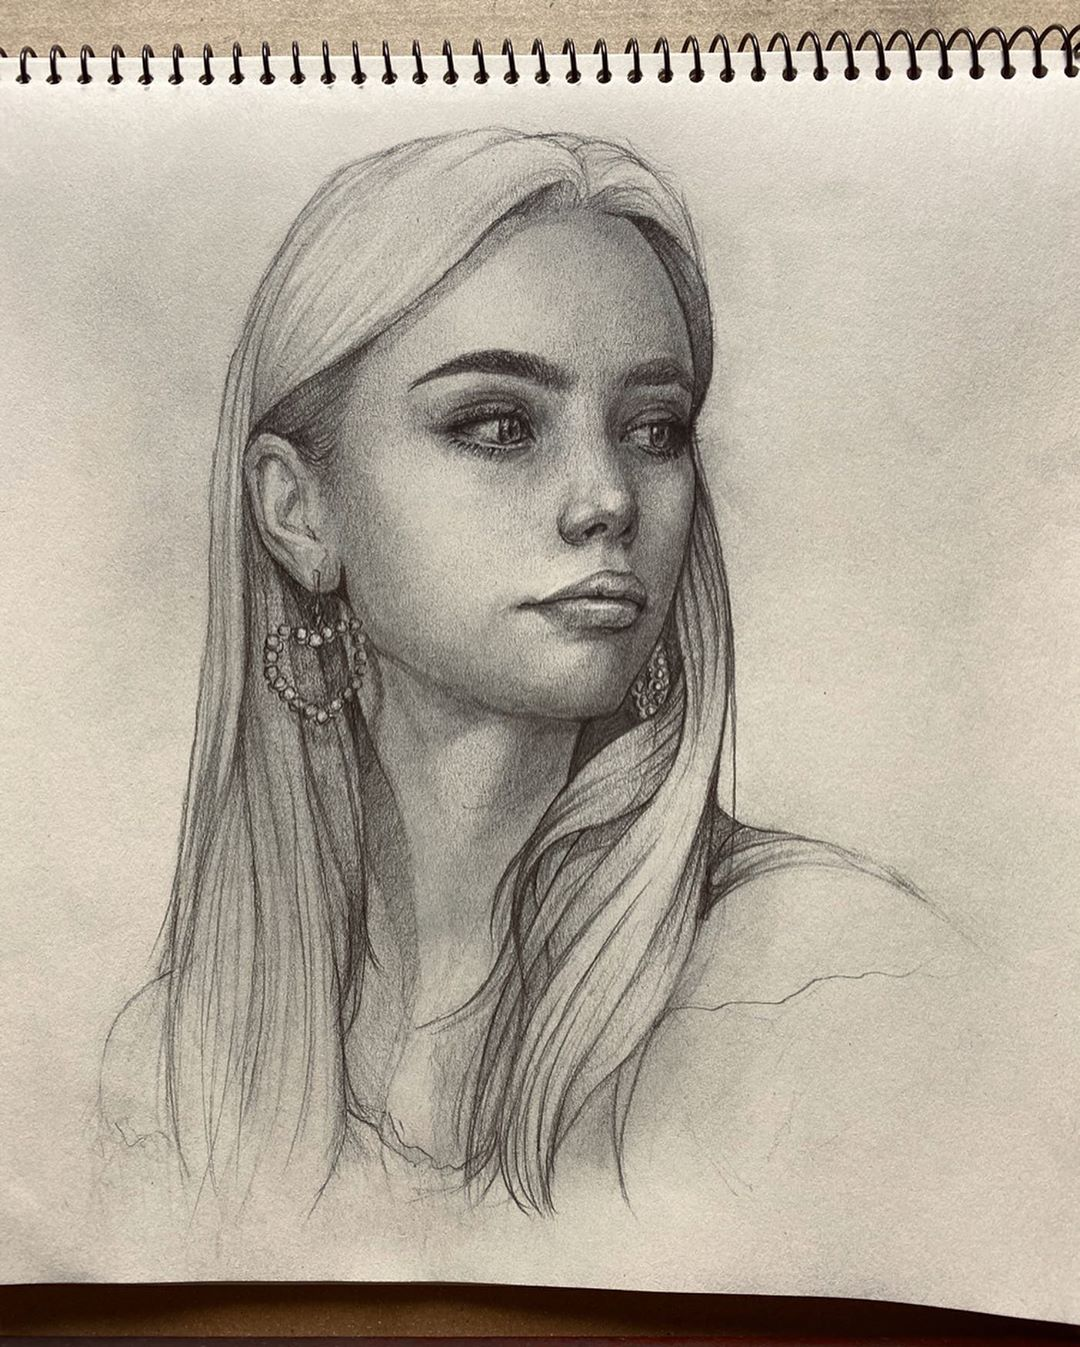 Sketch pencil portrait drawing